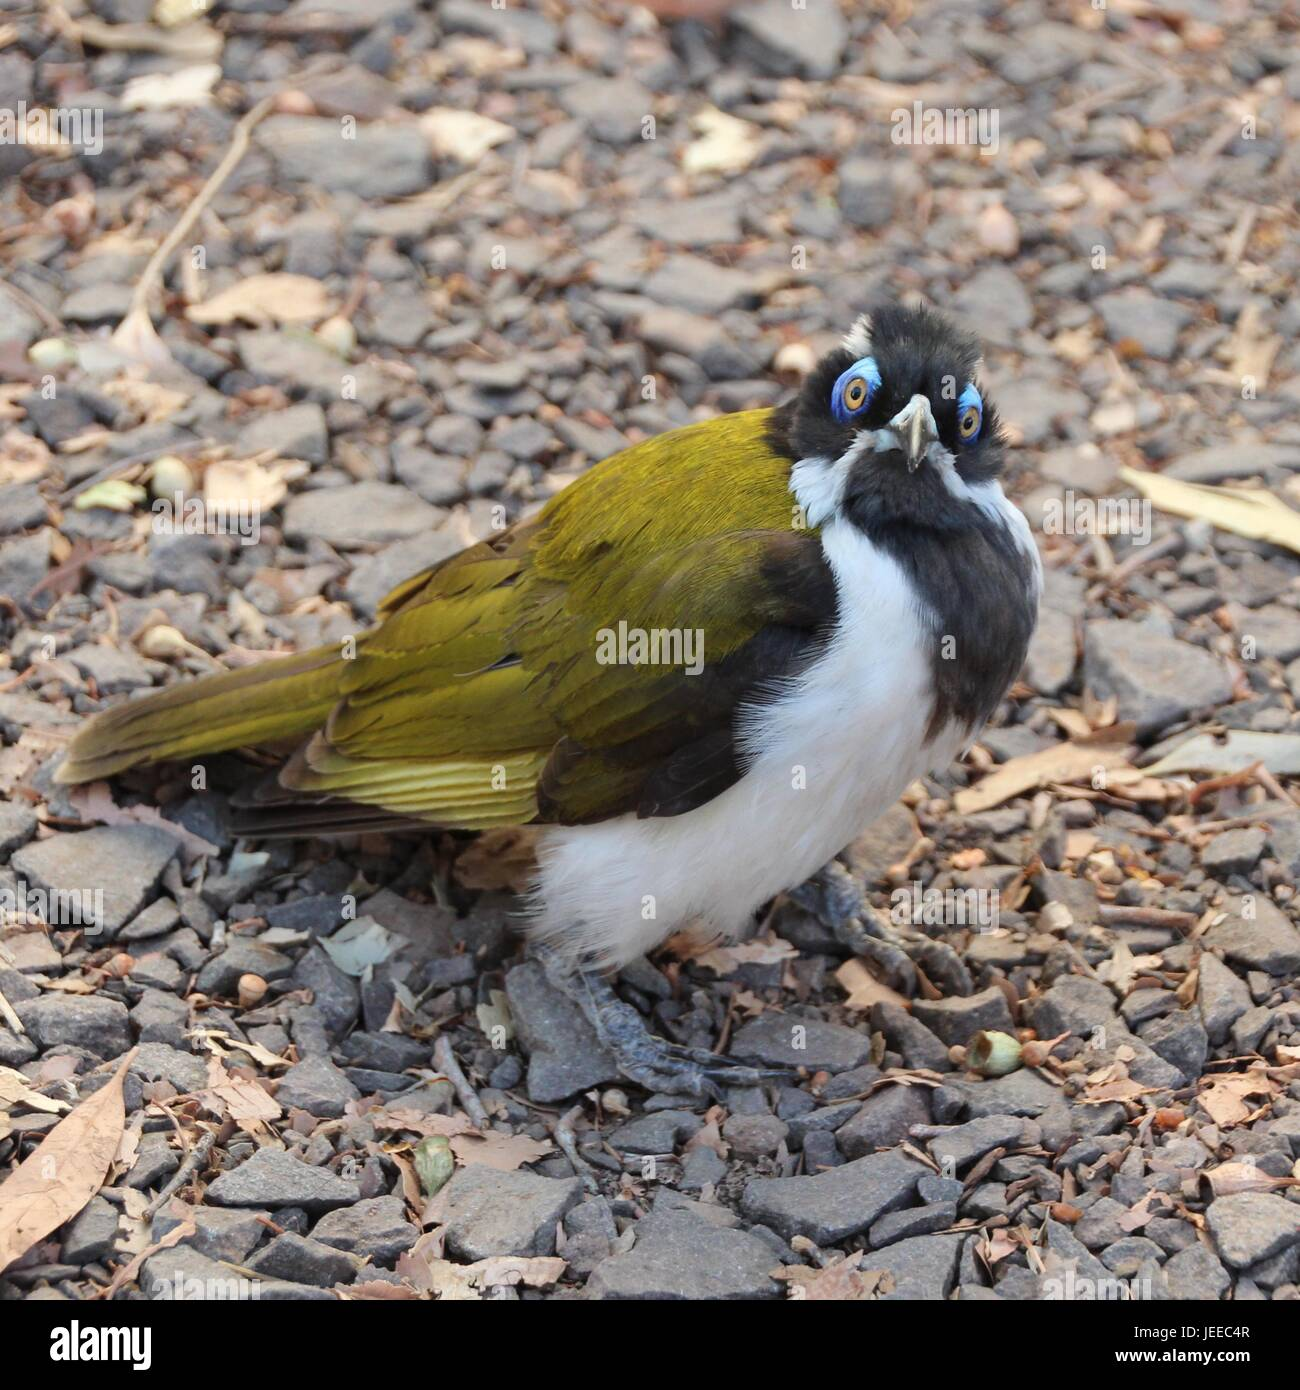 The honeyeater looks at me - Stock Image